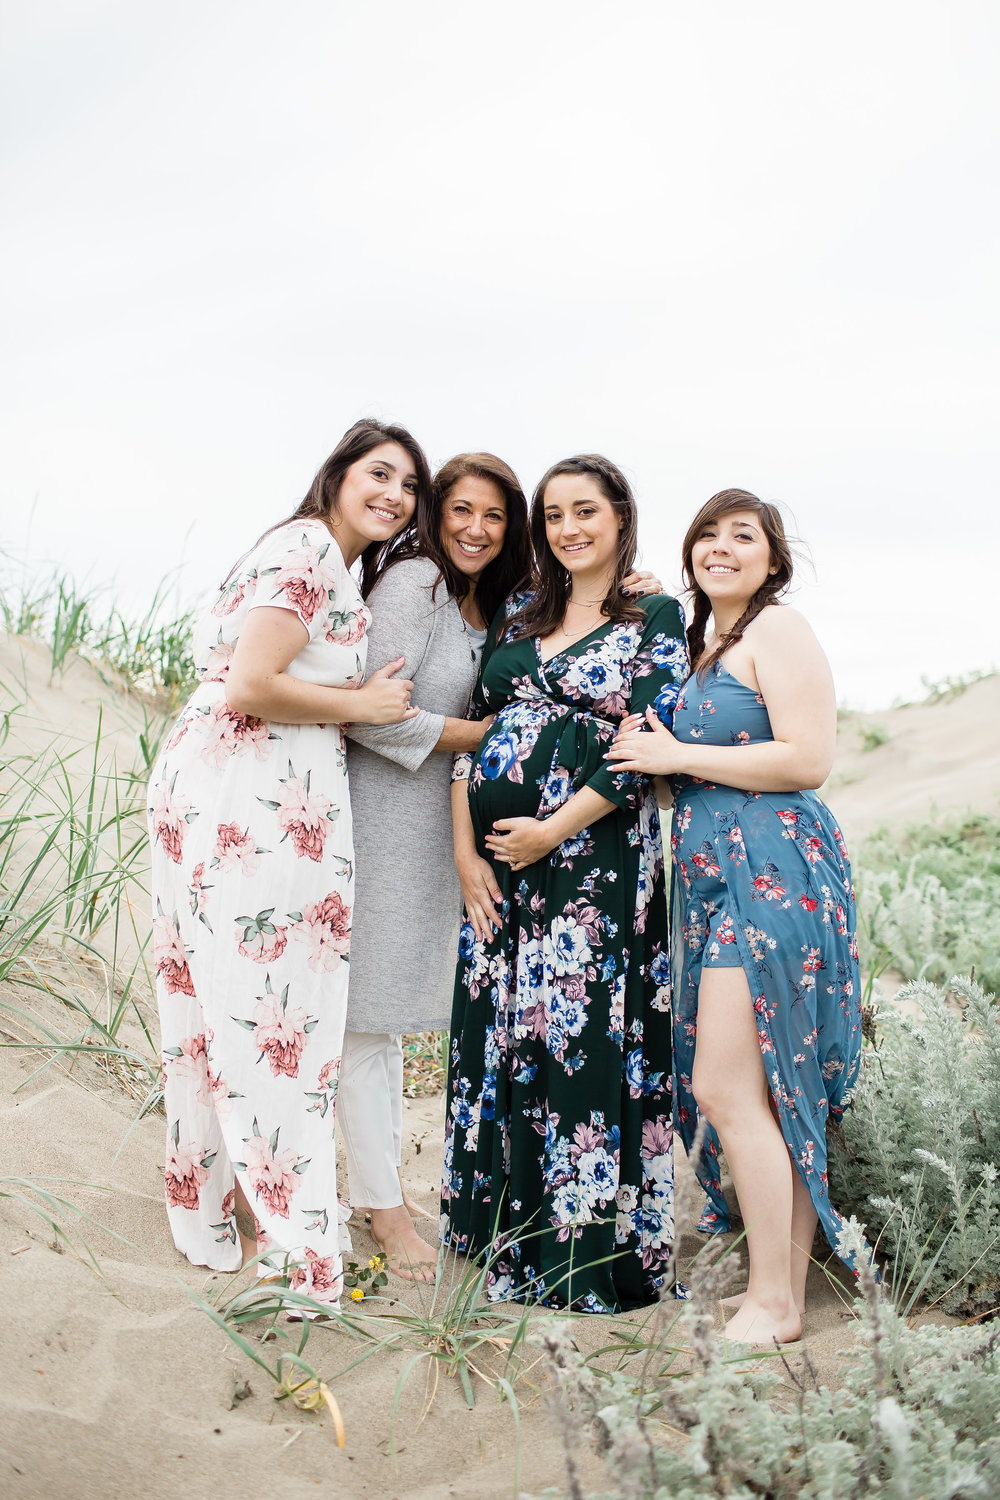 pregnant mom to be with aunts and grandma hugging on baker beach san francisco in floral print dresses rose toned romantic soft glam makeup by kim baker beauty san jose california makeup artist